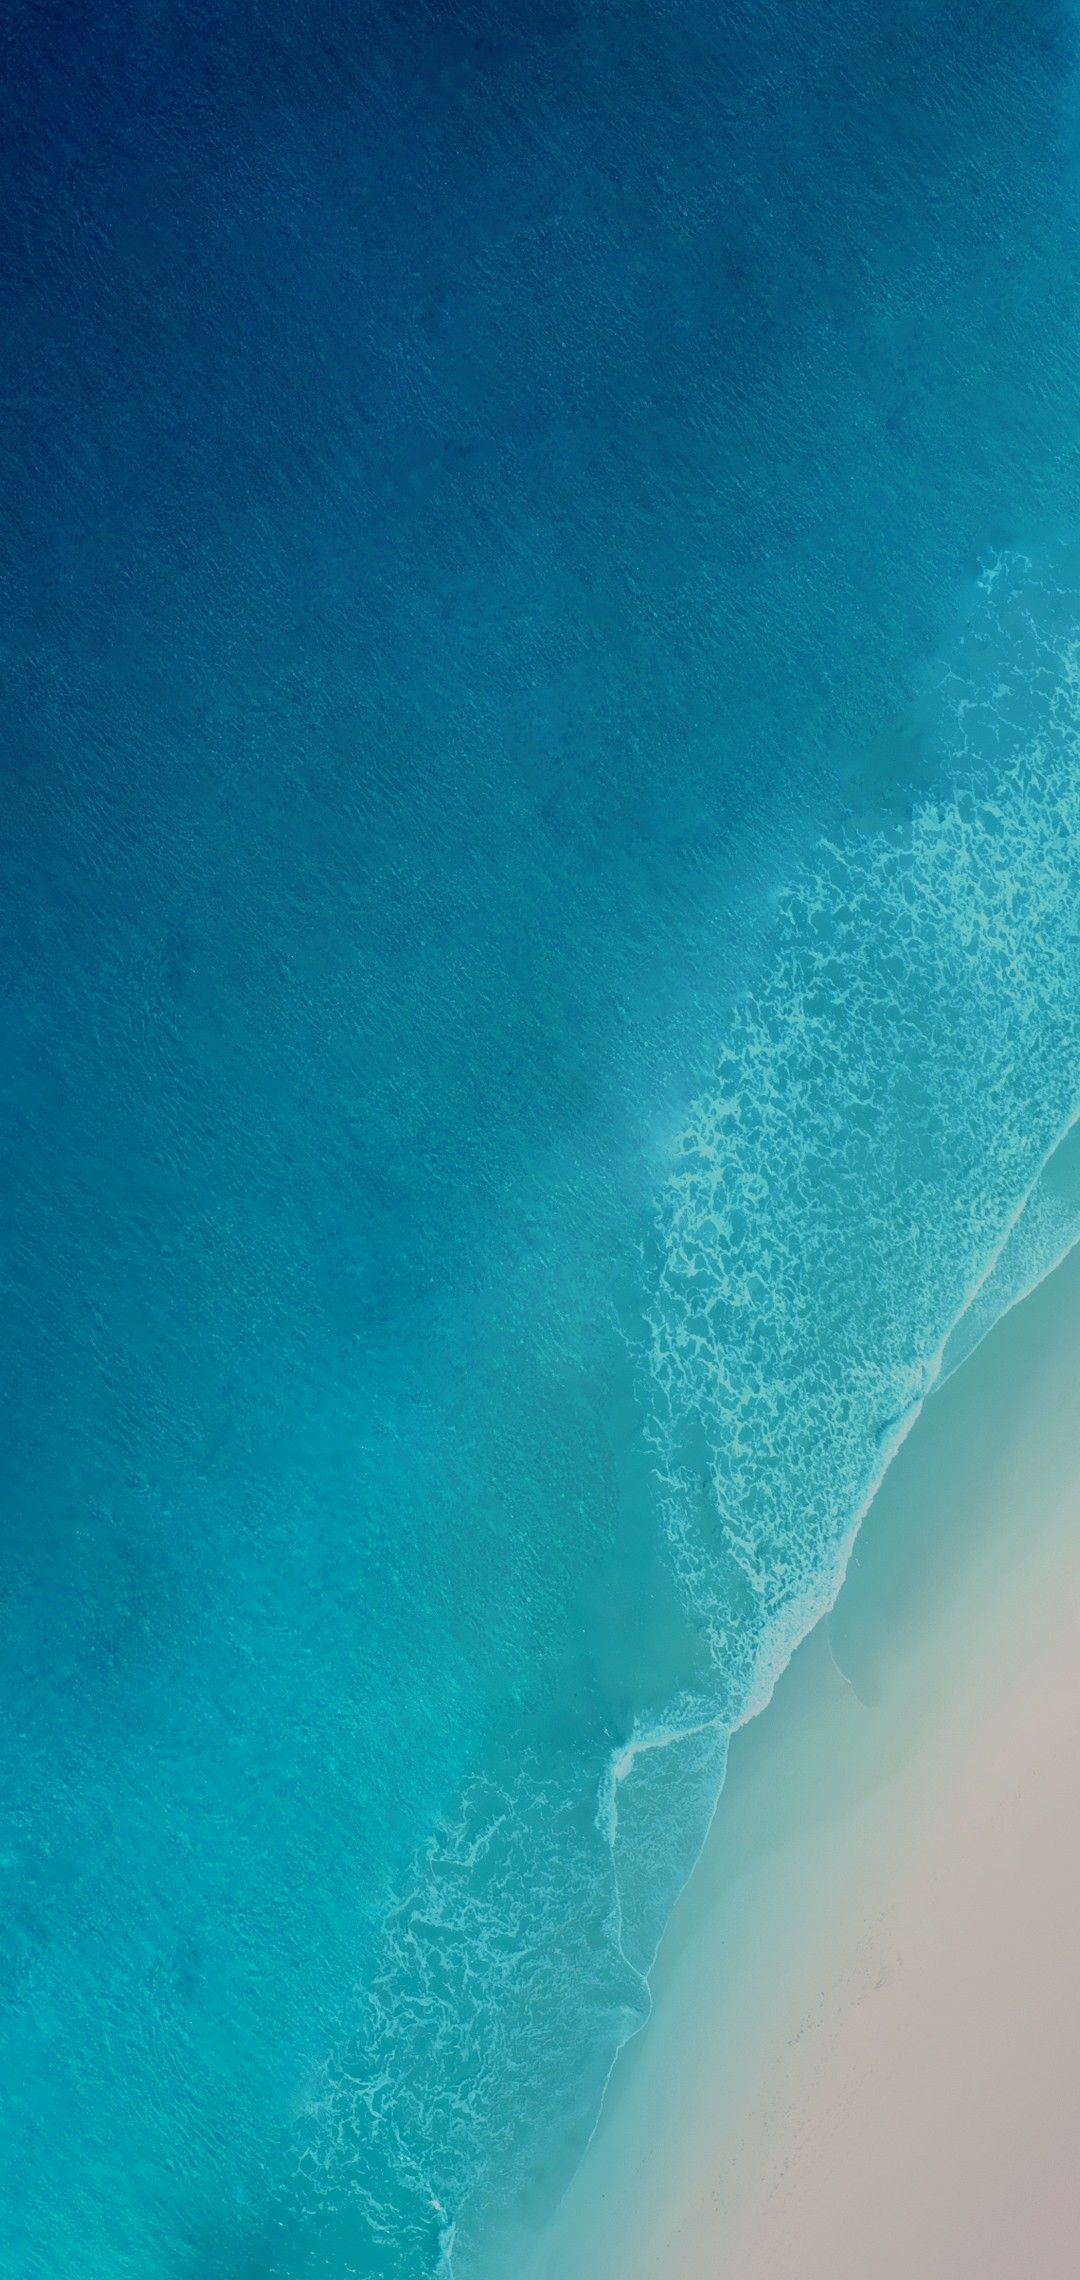 iOS 12, iPhone X, Aqua, blue, Water, ocean, apple